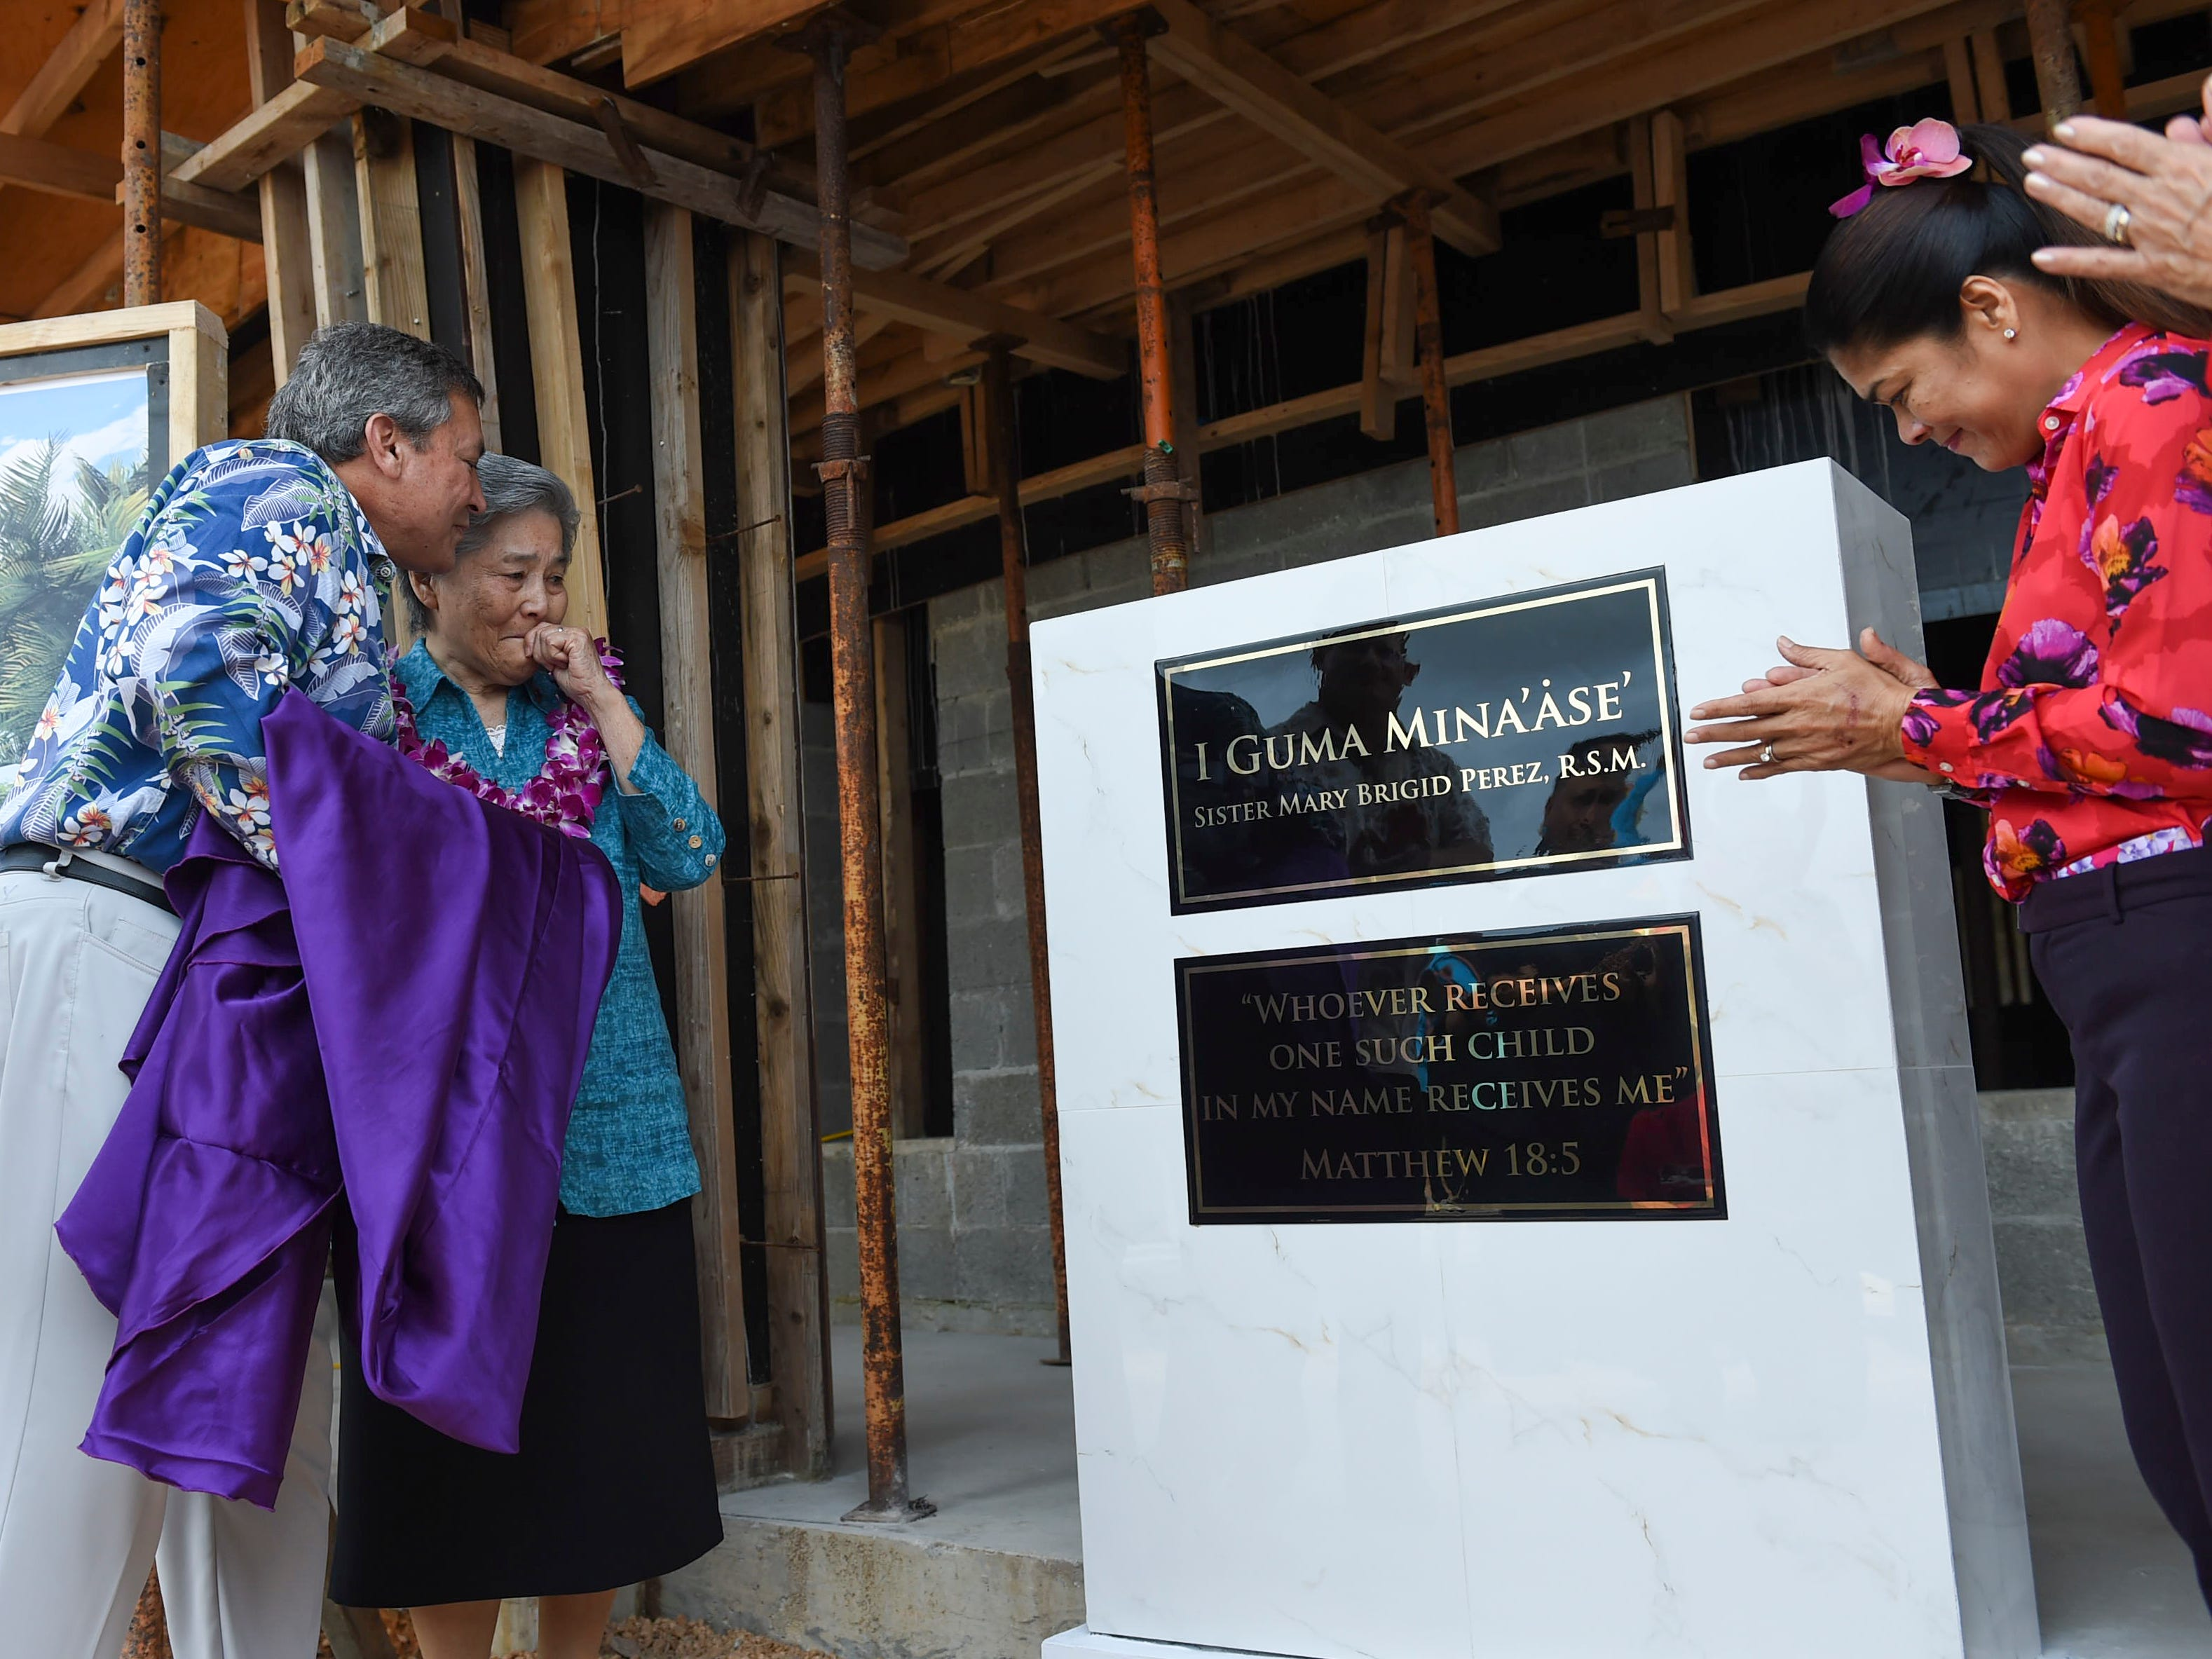 Gov. Eddie Baza Calvo congratulates Sister Mary Brigid Perez after unveiling a dedication plaque at the contruction site of the newly named I Guma Mina'åse Sister Mary Brigid Perez, R.S.M. in Barrigada on Dec. 31, 2018.